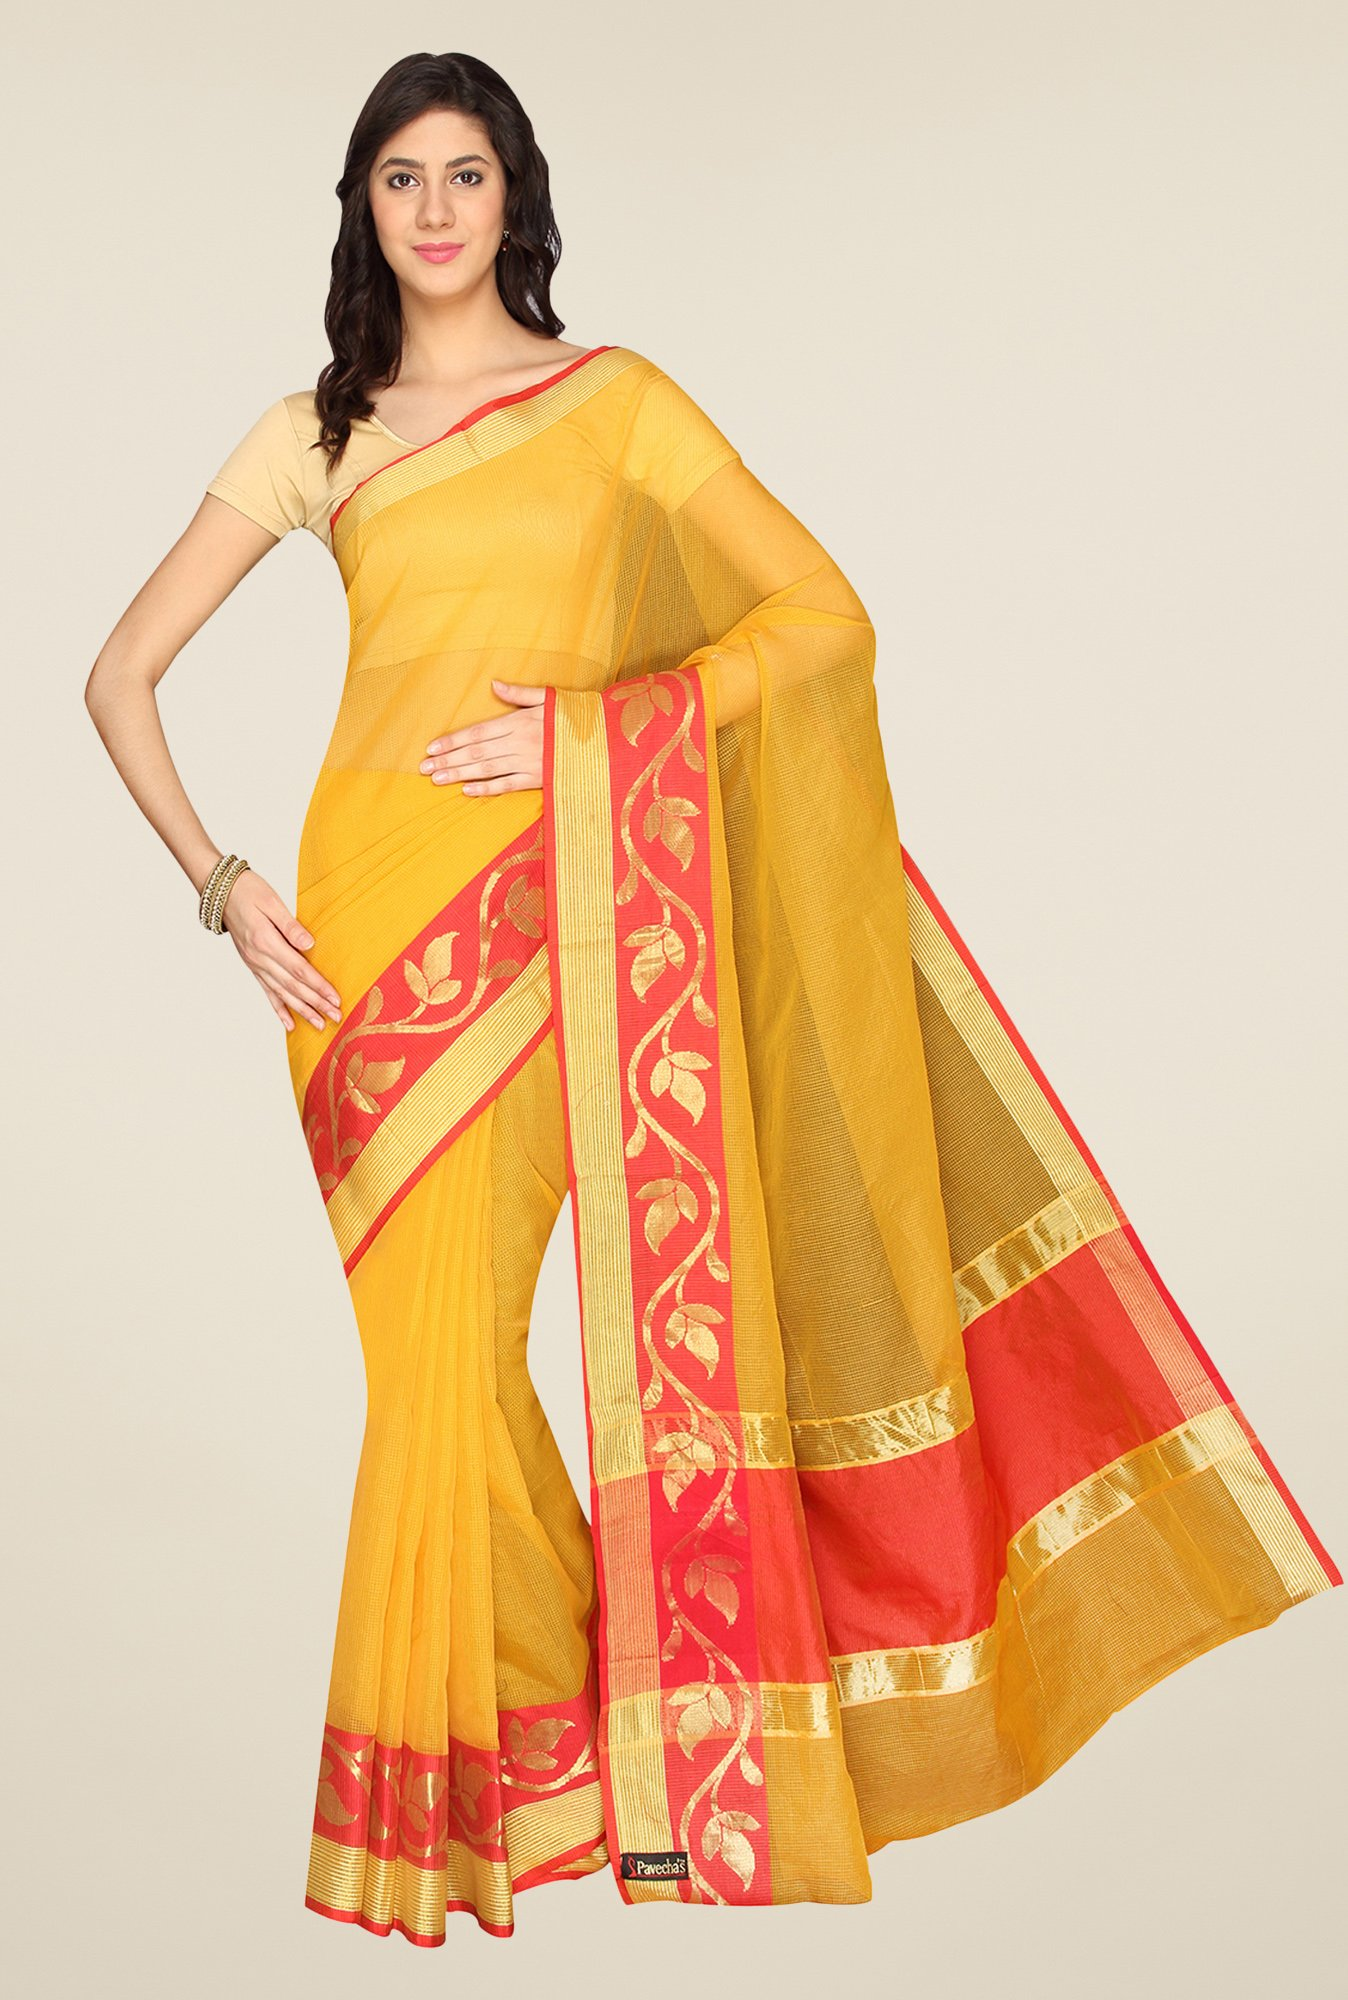 Pavecha's Yellow Banarasi Kota Cotton Saree